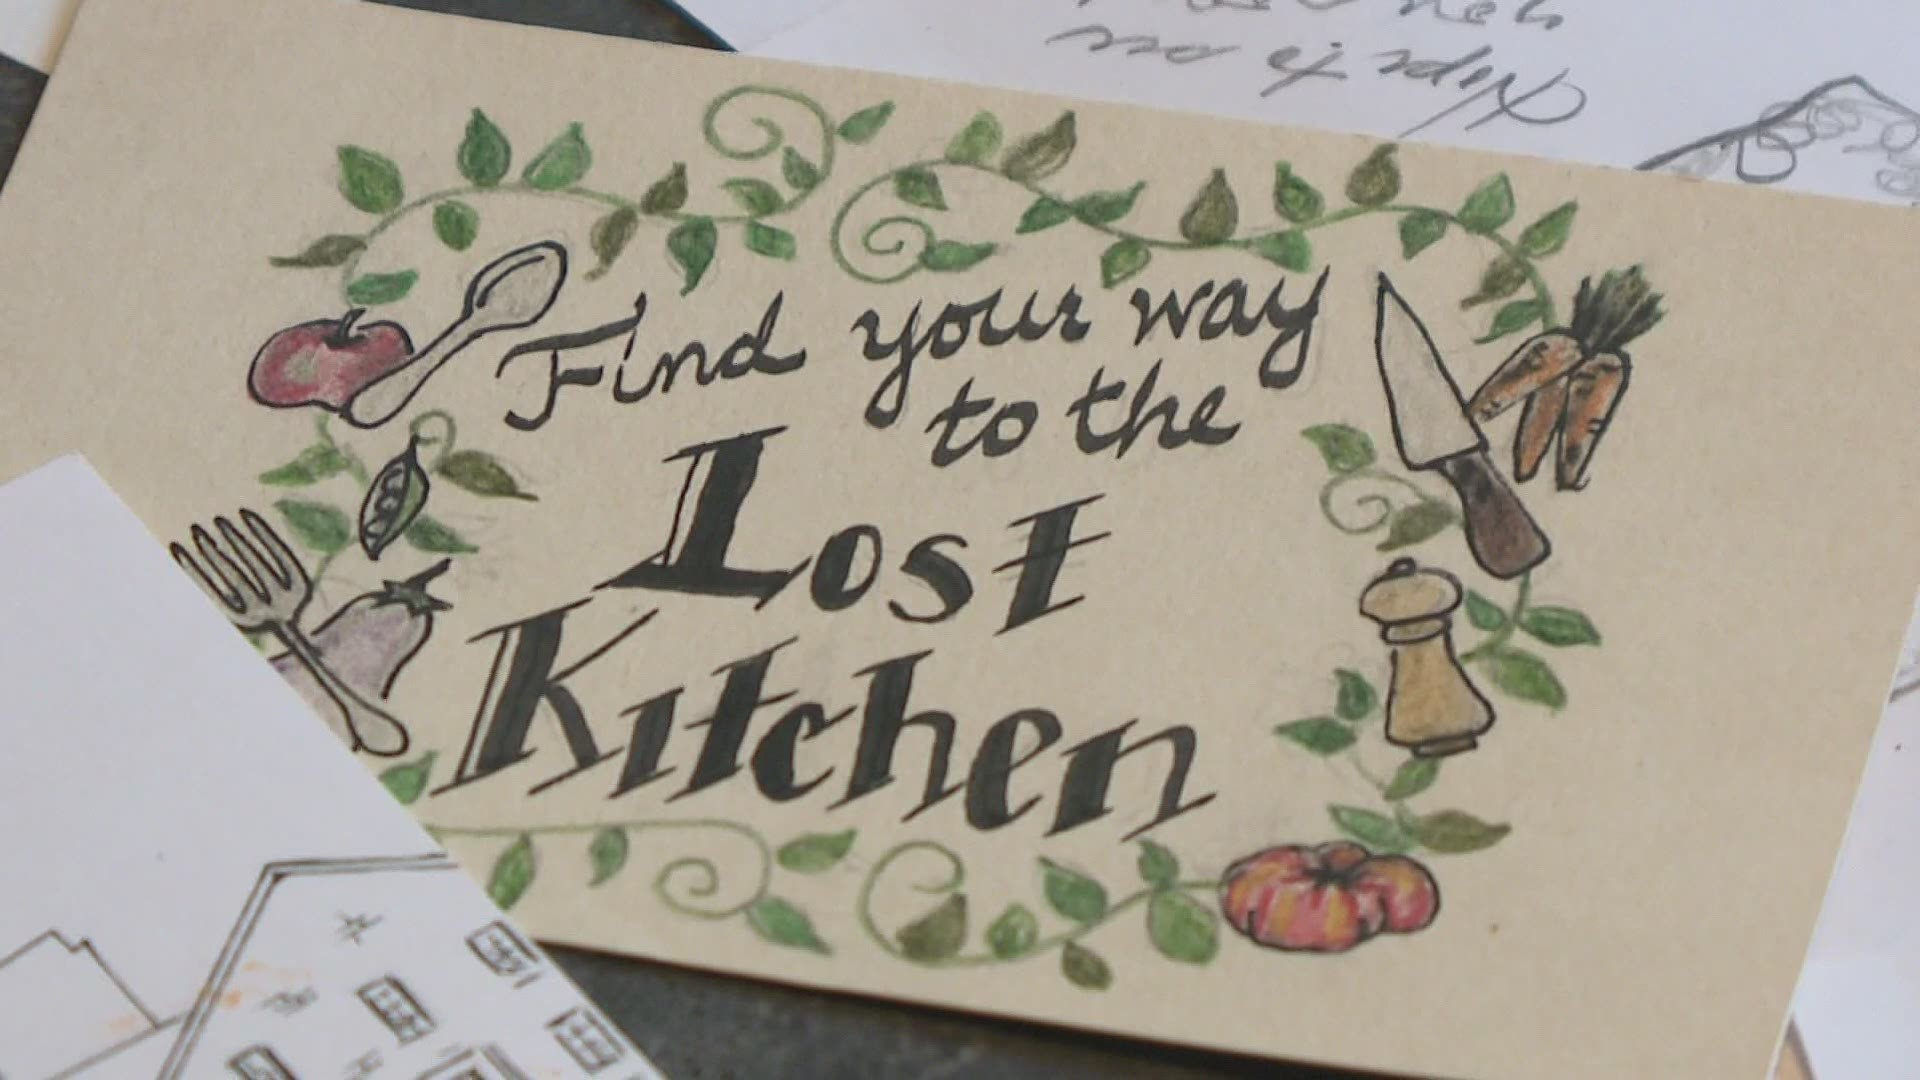 Lost Kitchen Asking For Donations With Reservation Requests Newscentermaine Com